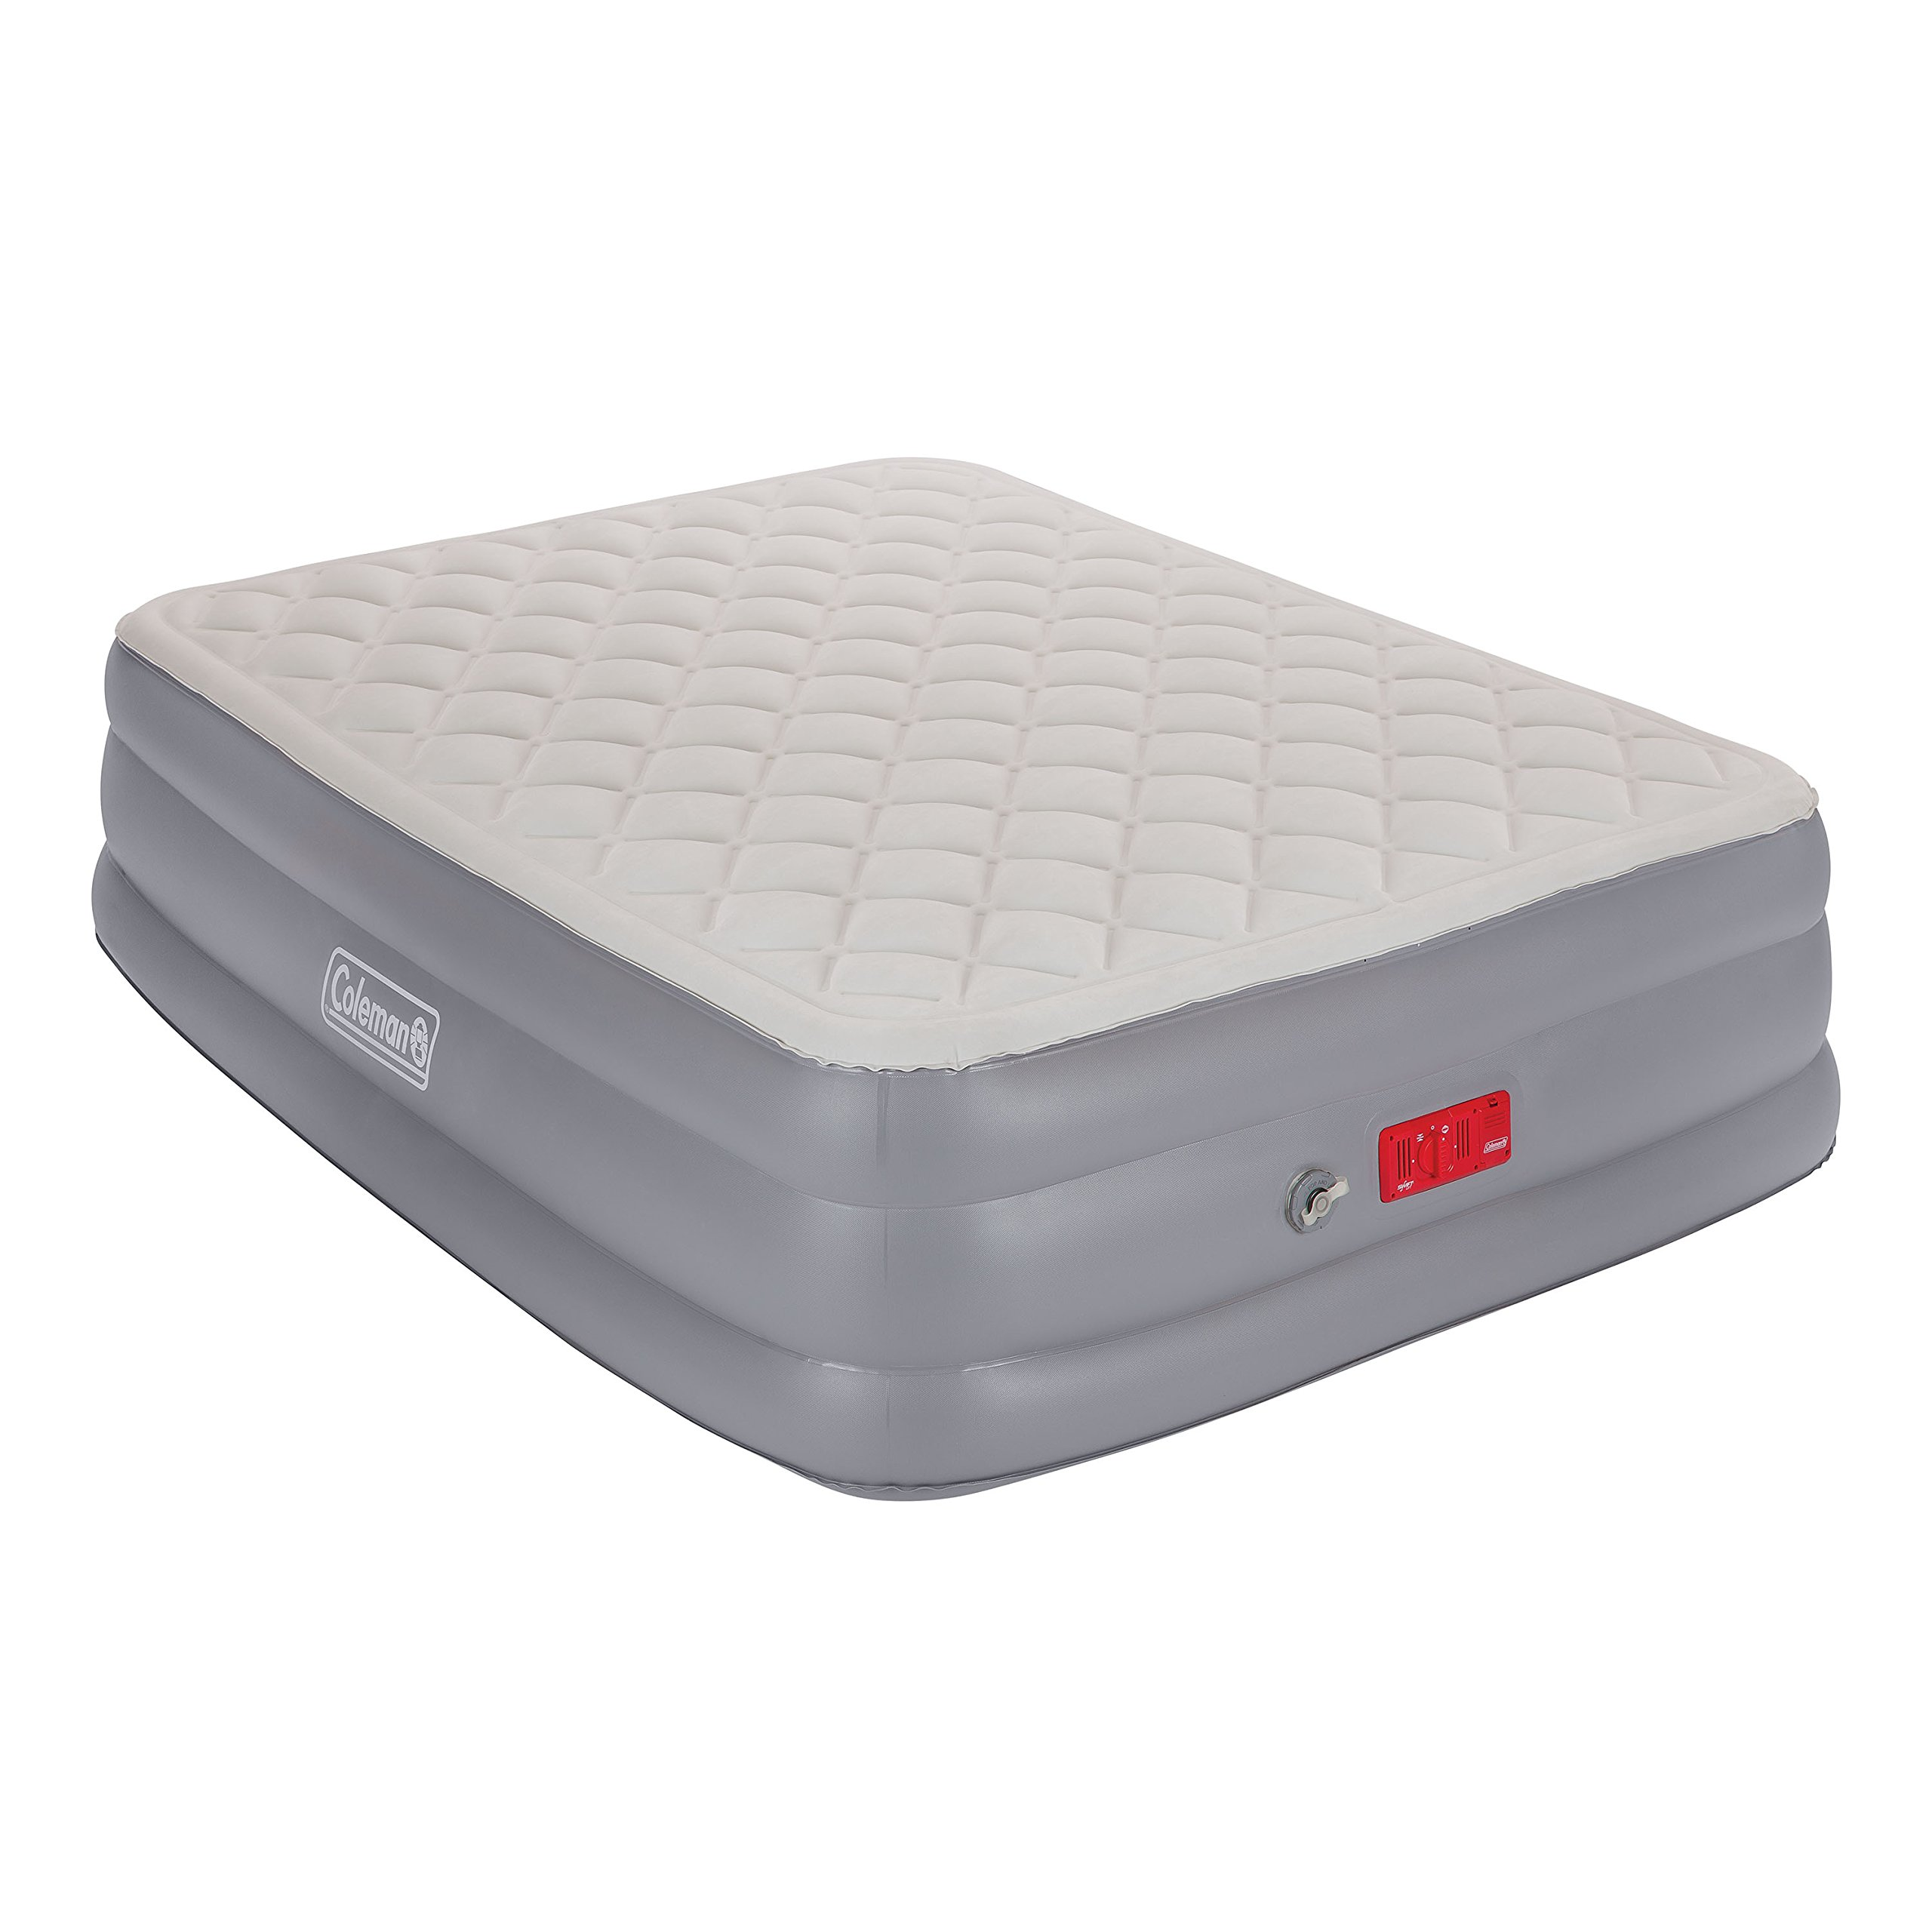 Coleman SupportRest Elite Pillow Top Double Queen High Airbed by Coleman (Image #6)